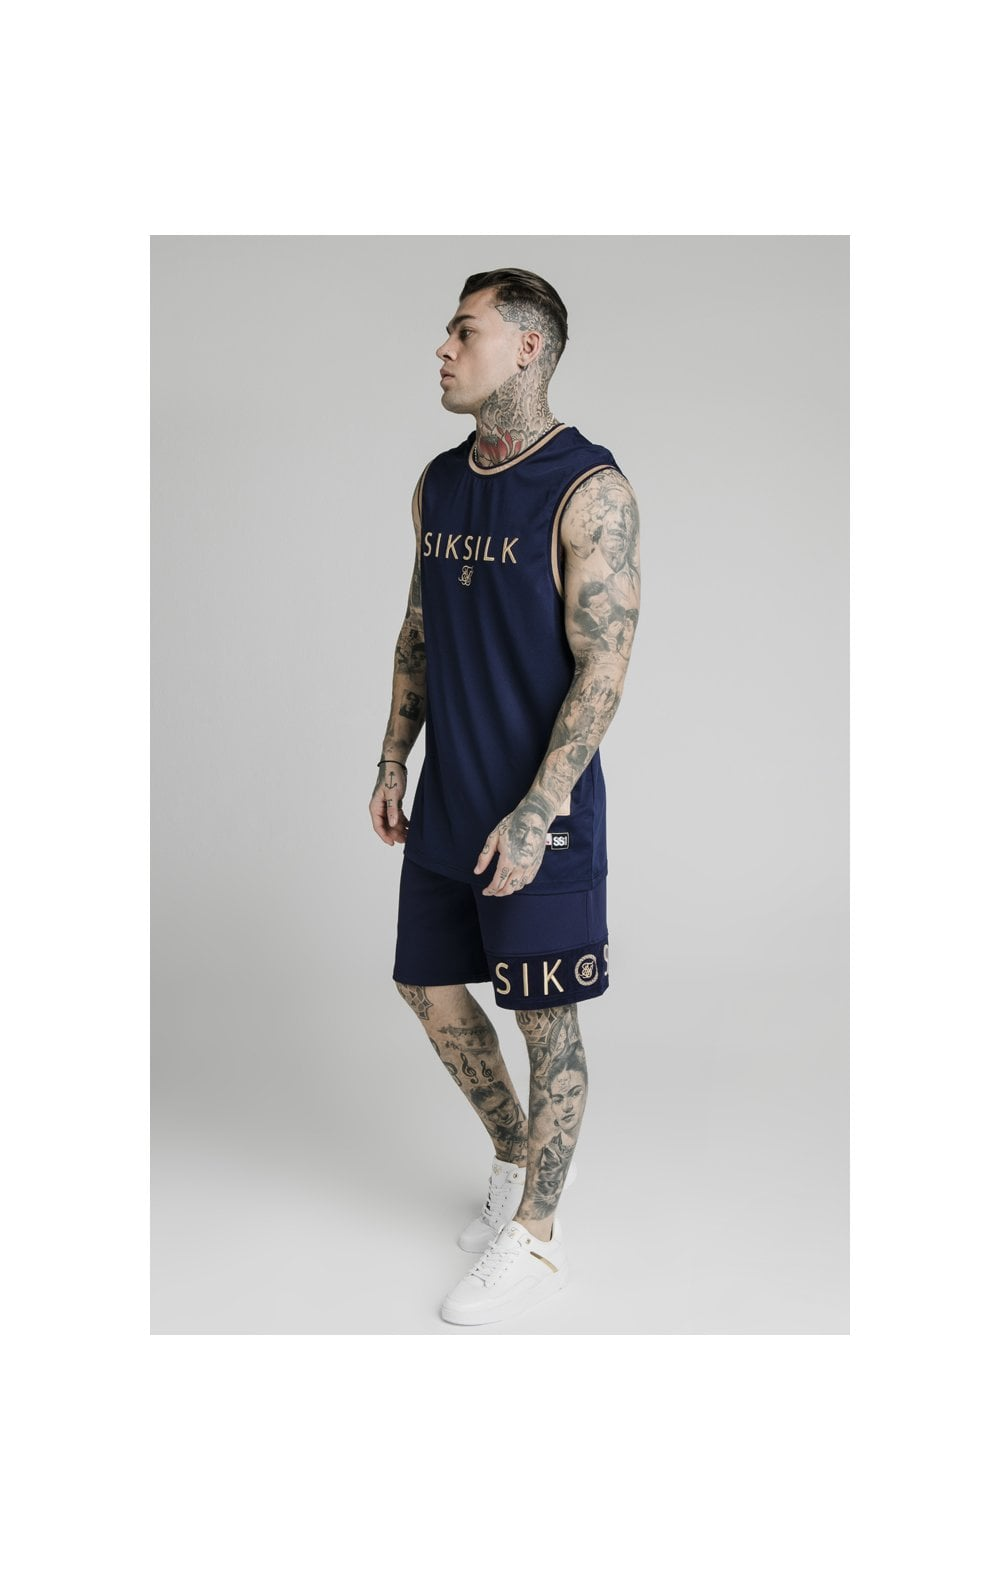 Load image into Gallery viewer, SikSilk Eyelet Mesh Basketball Vest - Navy Eclipse (3)